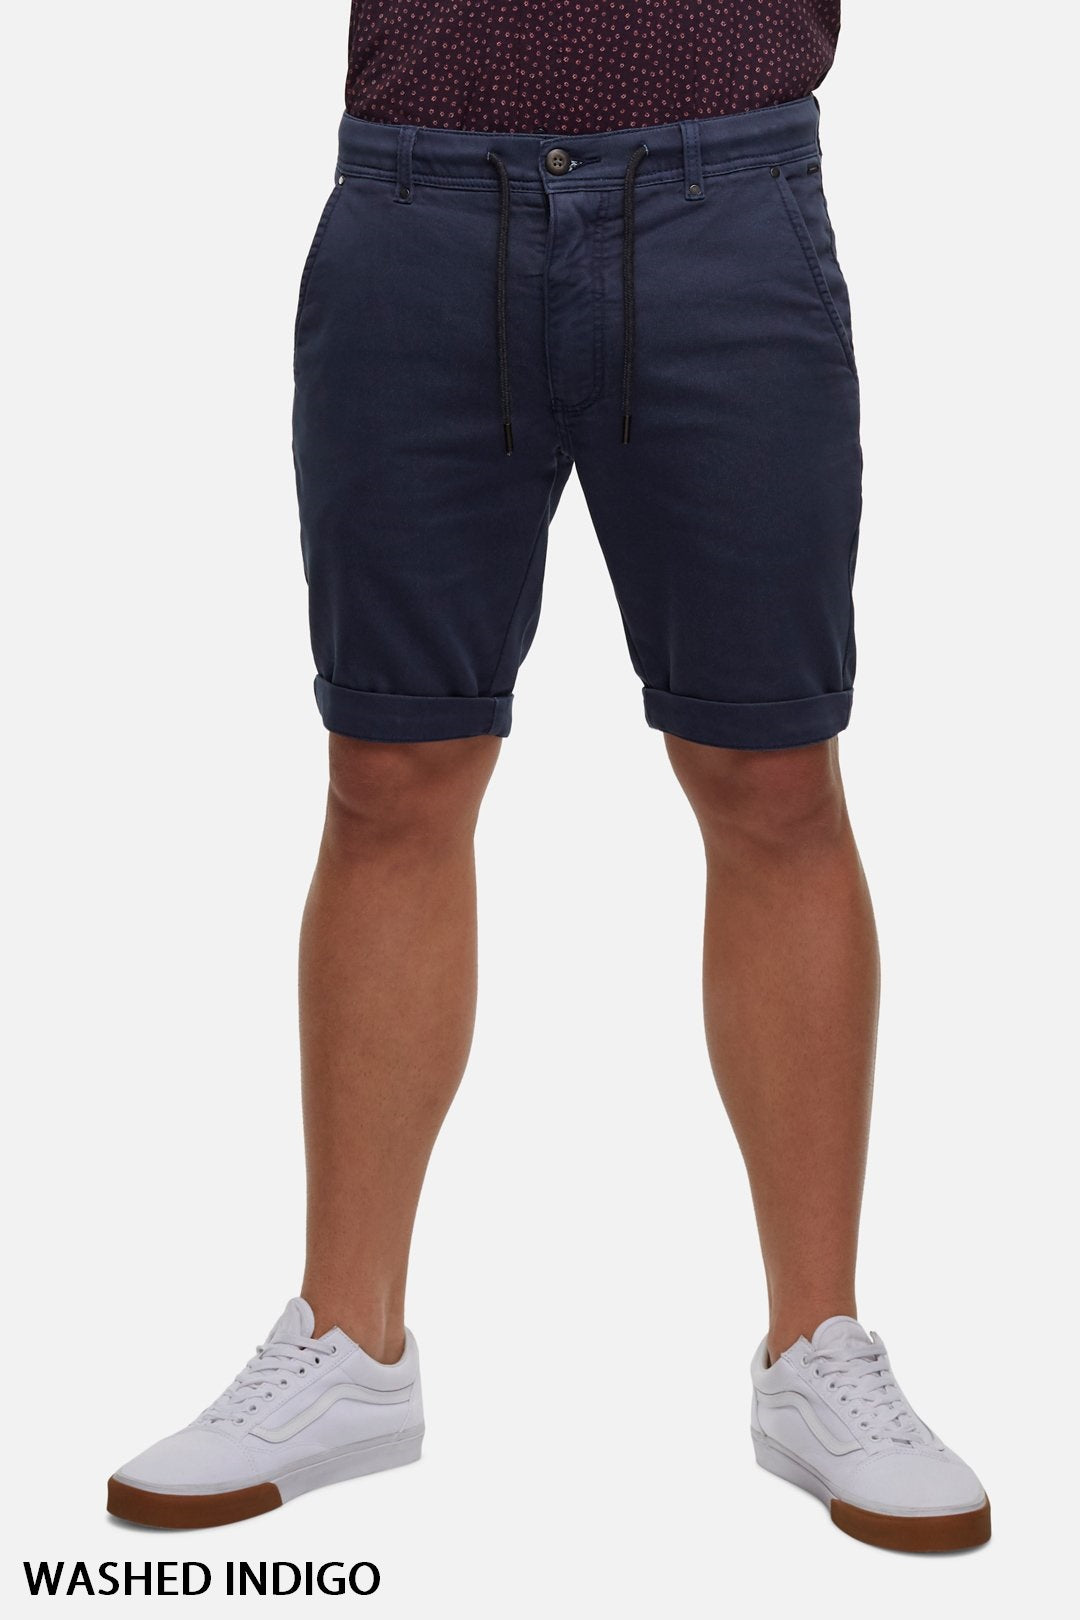 Industrie The Drifter Cuba Short